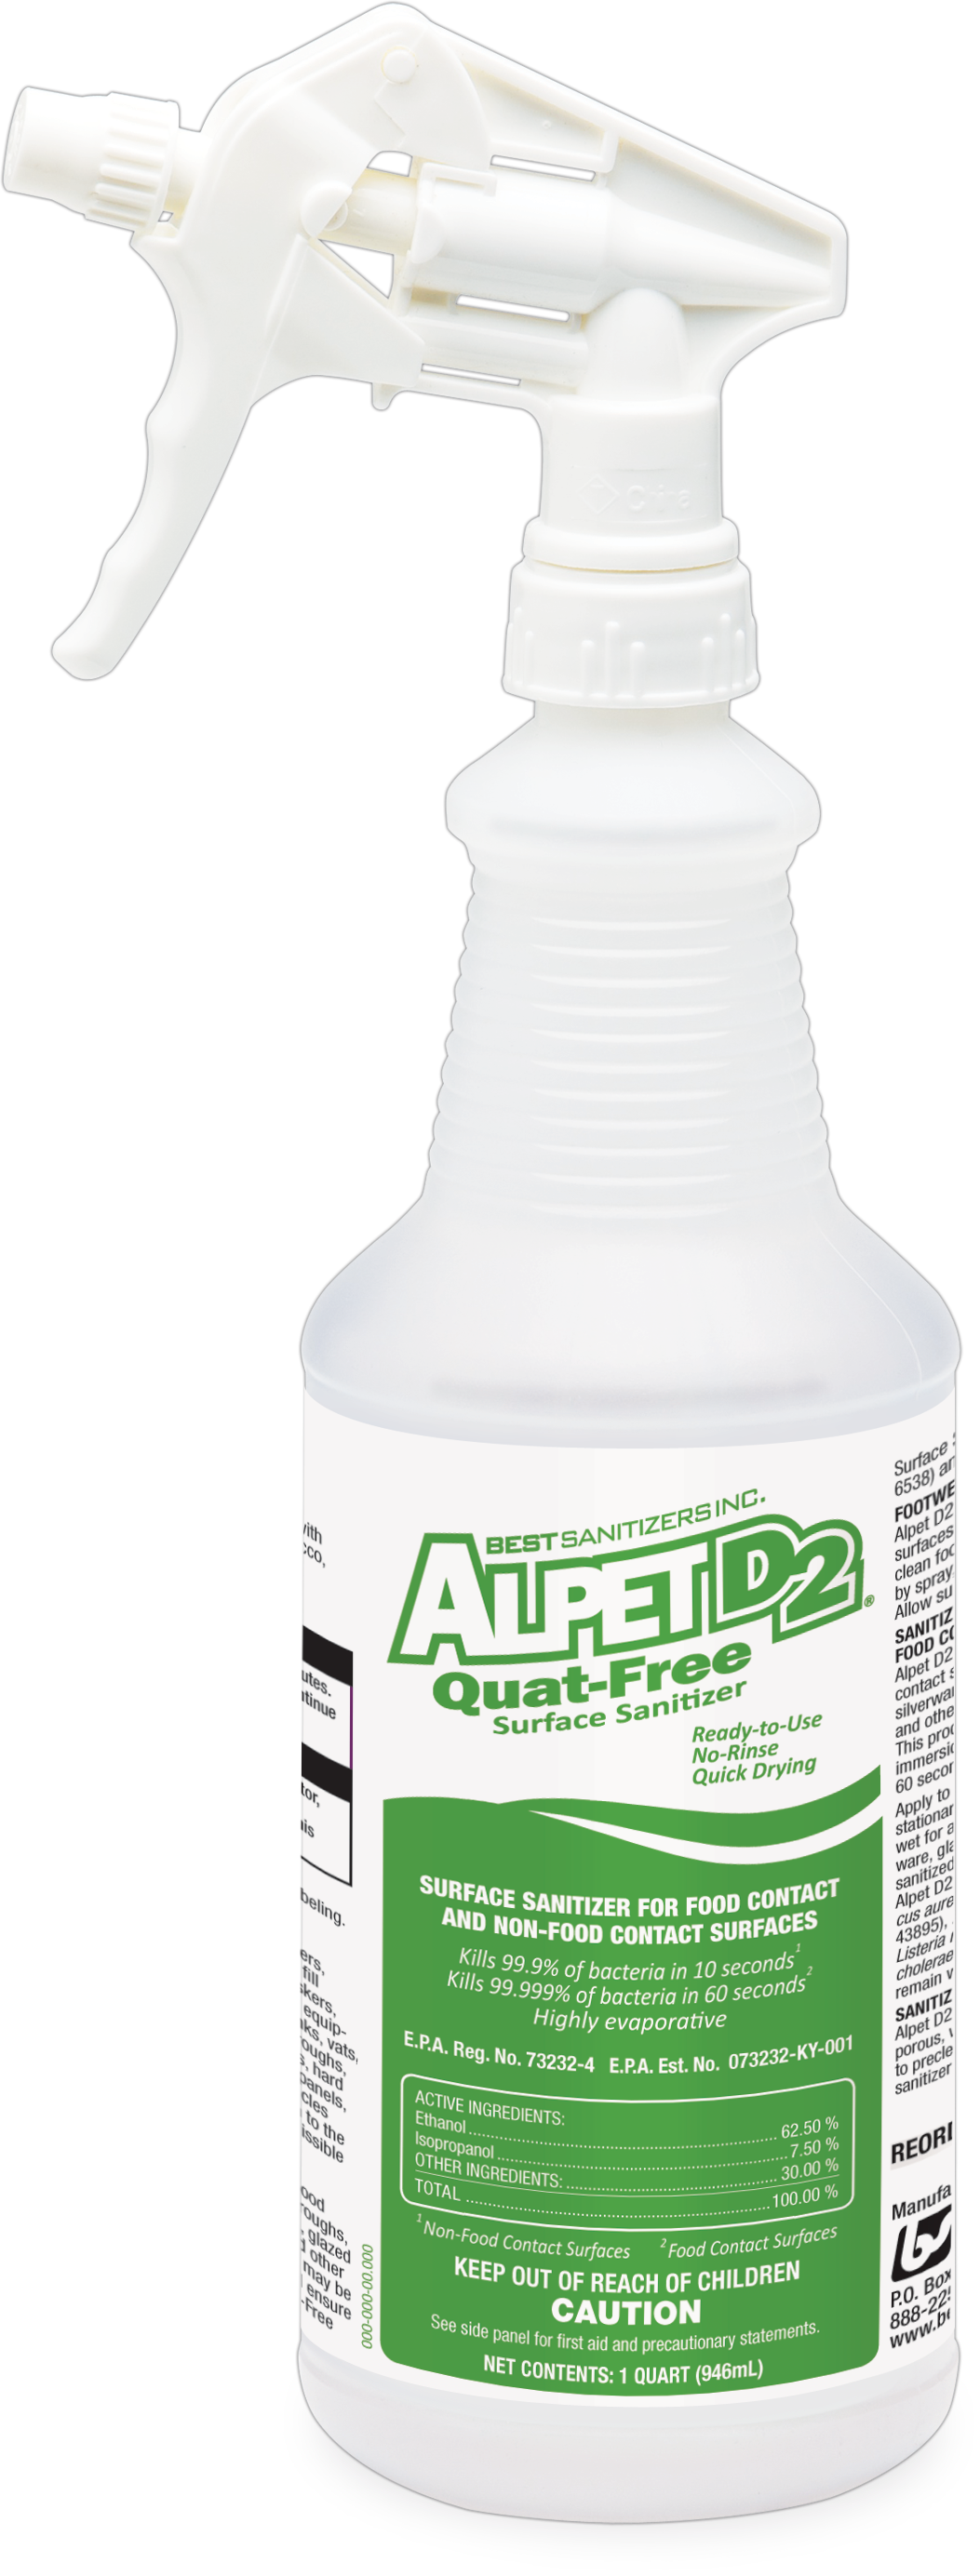 Alpet D2 Quat Free Surface Sanitizer From Best Sanitizers Is An Effective Food Contact And Hdpng.com  - Alpet, Transparent background PNG HD thumbnail